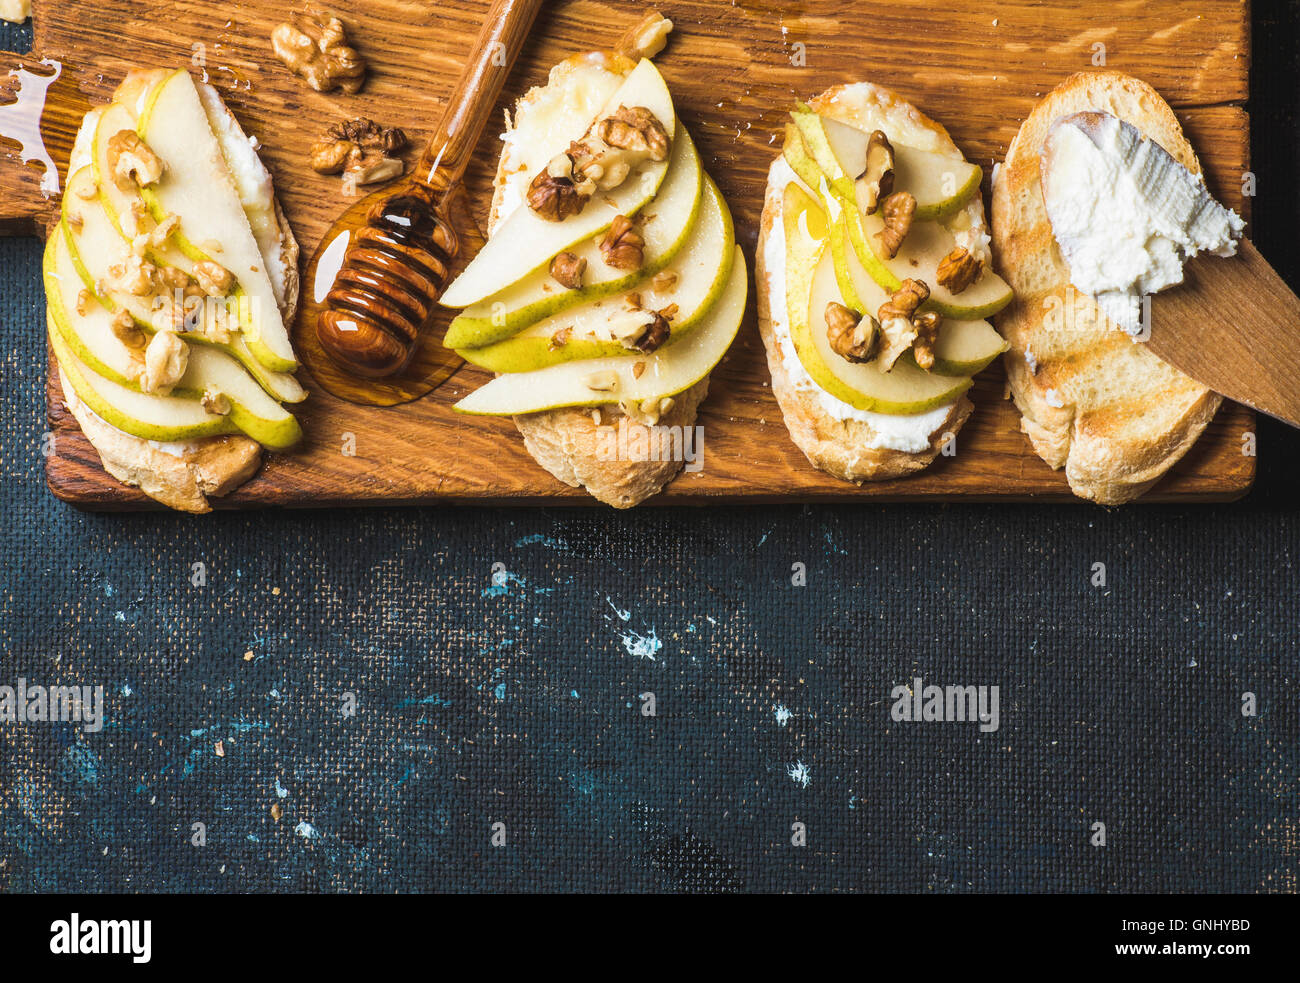 Crostini with pear, ricotta cheese, honey and walnuts. Breakfast toasts or snack sandwiches on rustic wooden board - Stock Image